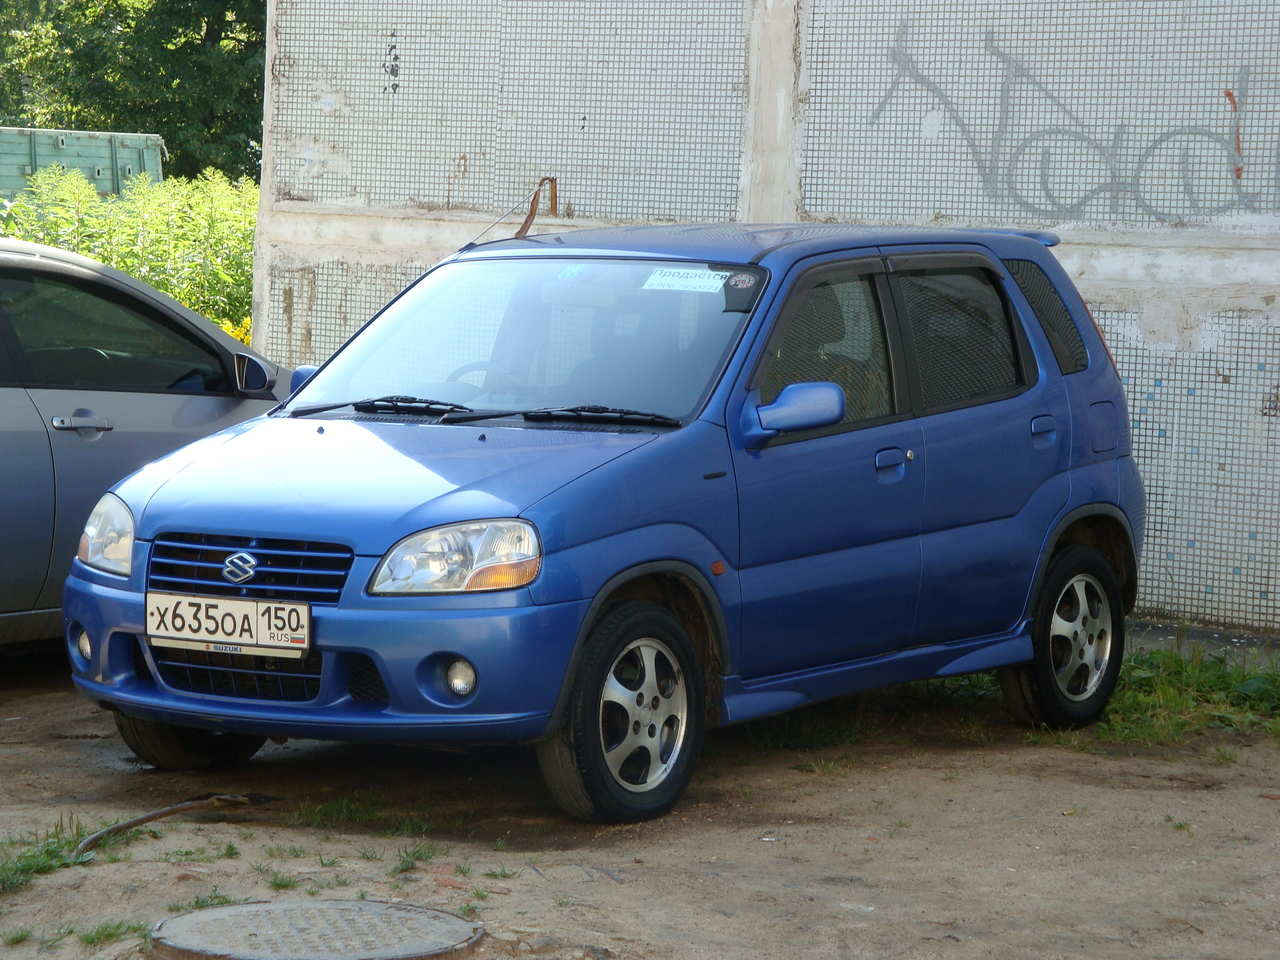 Suzuki Swift 1.3 2000 photo - 11